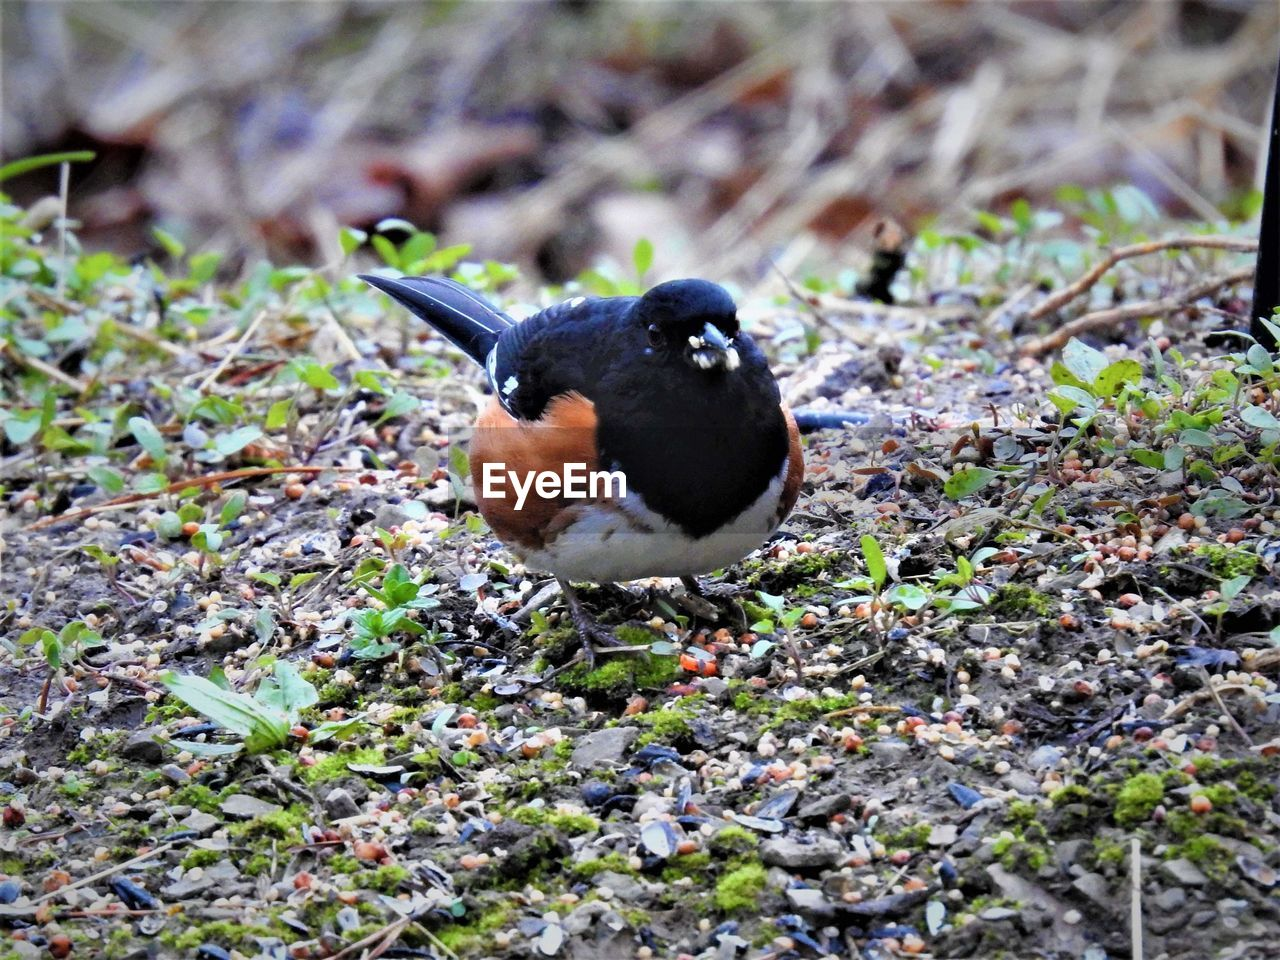 one animal, animal themes, bird, animal, vertebrate, animal wildlife, animals in the wild, land, day, no people, field, nature, selective focus, high angle view, outdoors, close-up, black color, perching, full length, plant